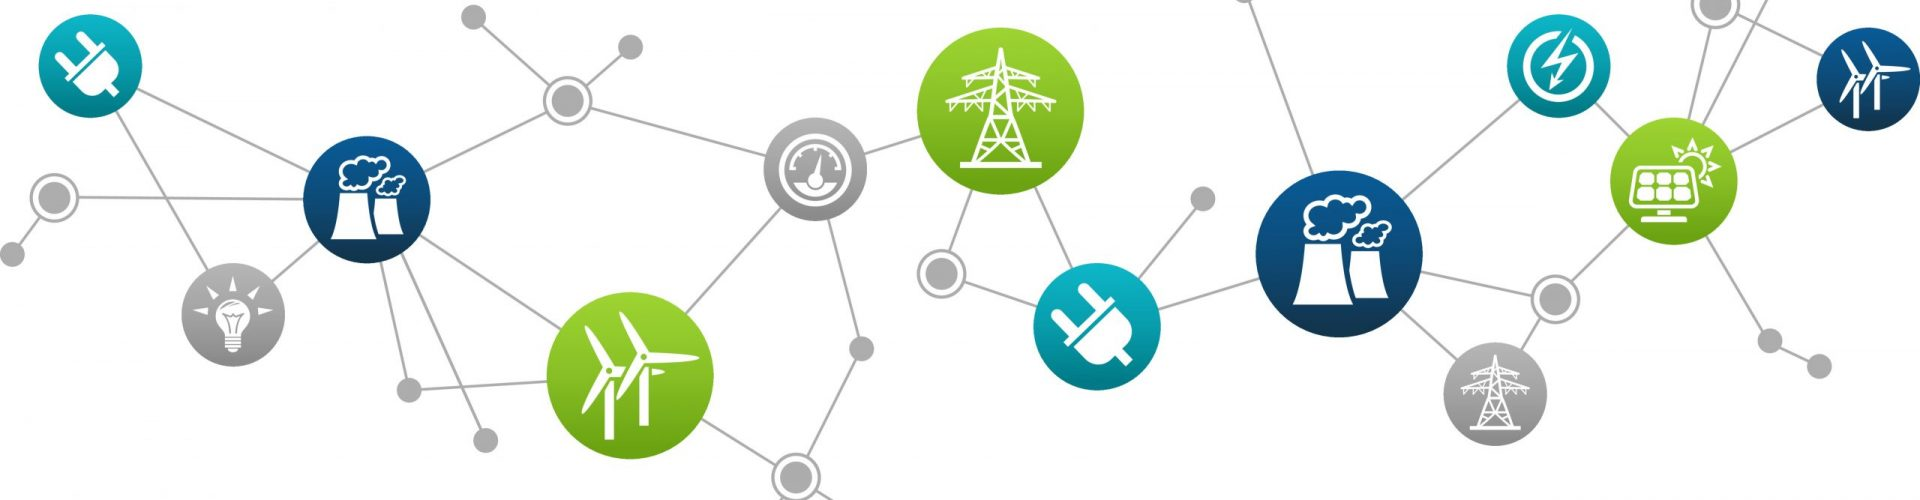 electricity / energy vector illustration. Concept with connected icons related to energy transmission, power supply and electric power infrastructure.